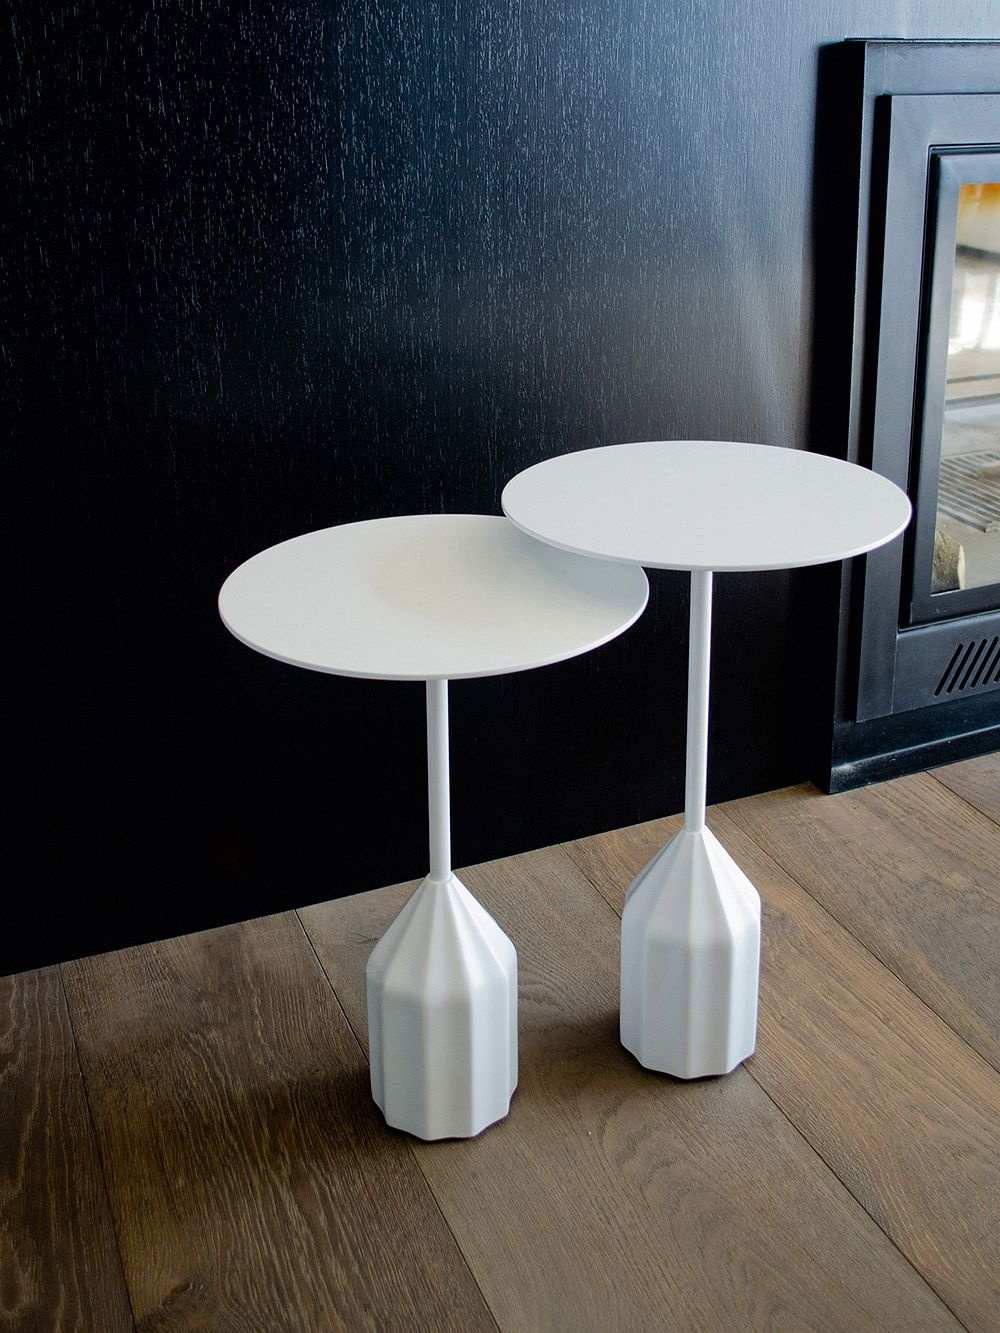 The Mini Burin side table from Viccarbe